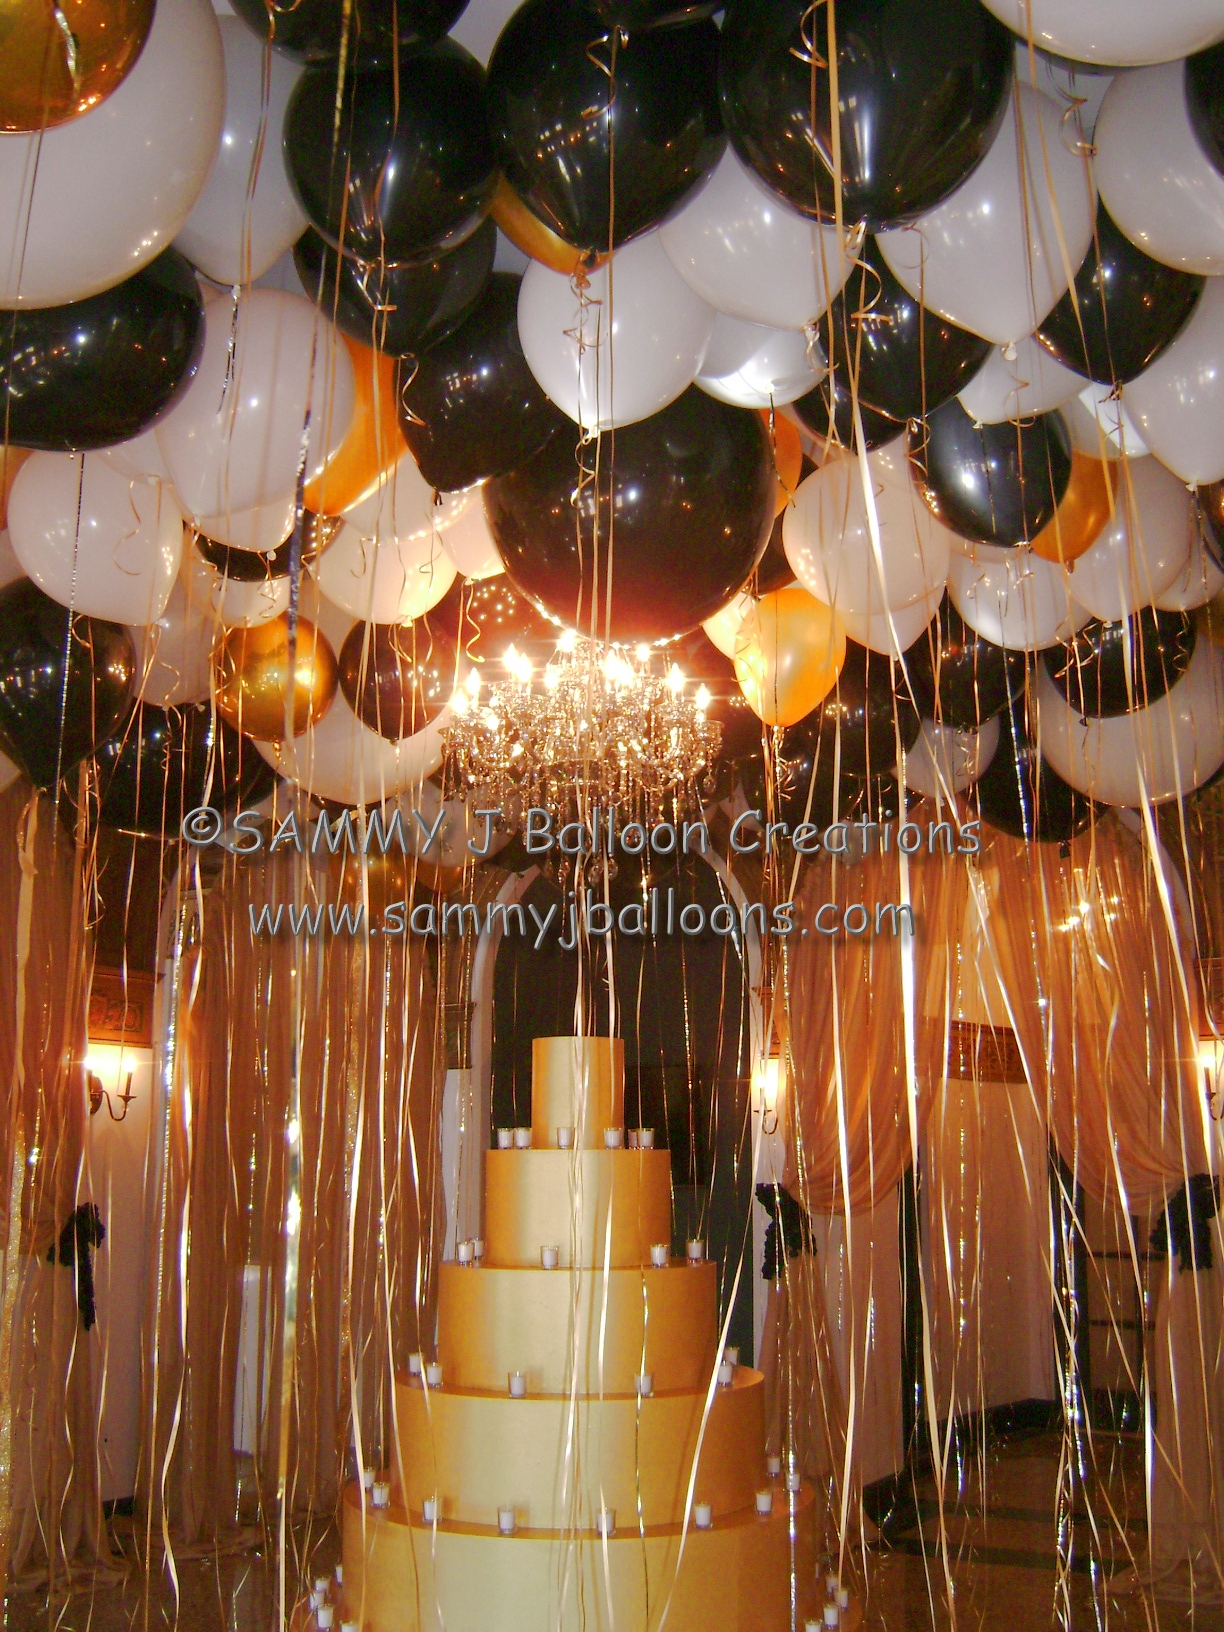 SAMMY J Balloon Creations st louis balloons ceiling canopy